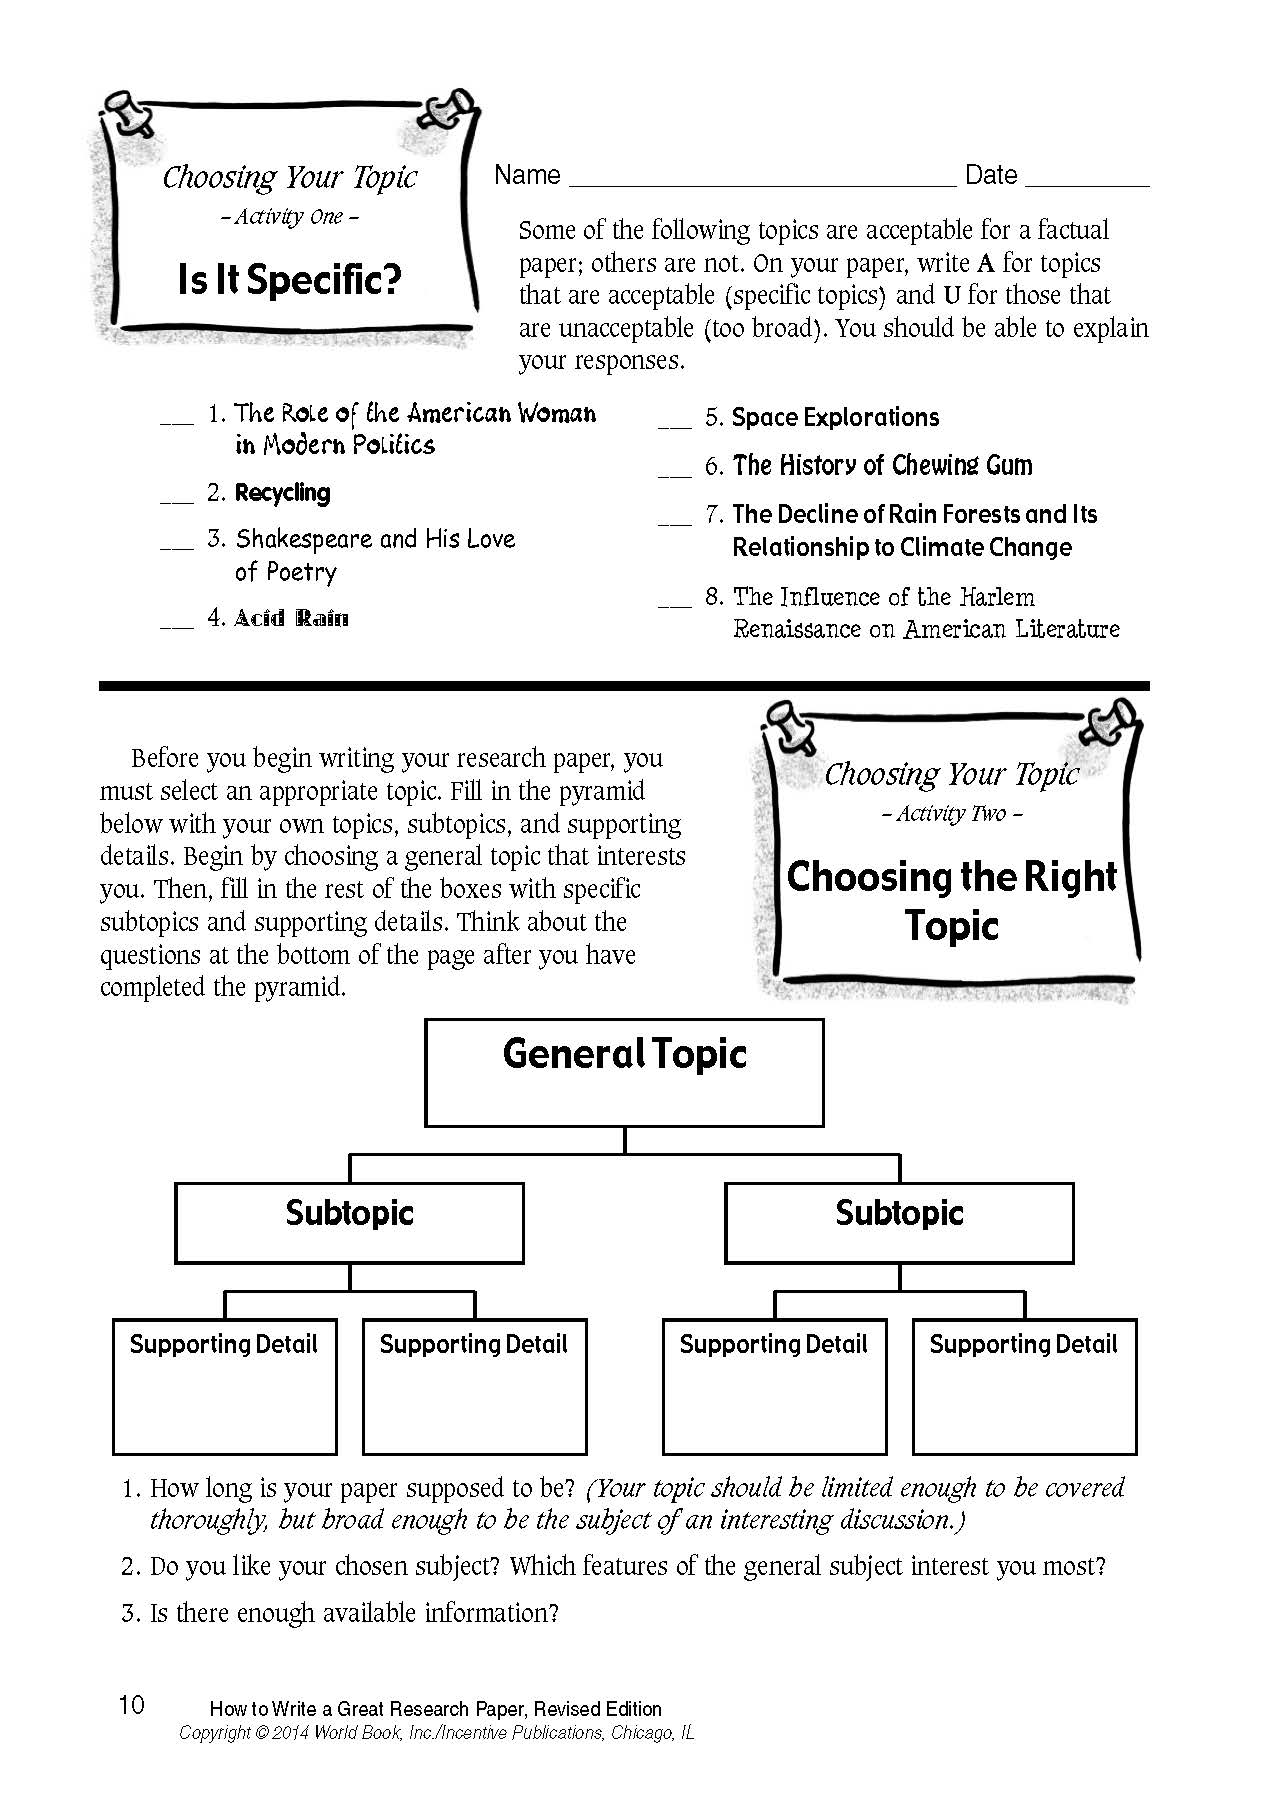 How To Write A Great Research Paper World Book  Interiors II  How To Write A Great Research Paper